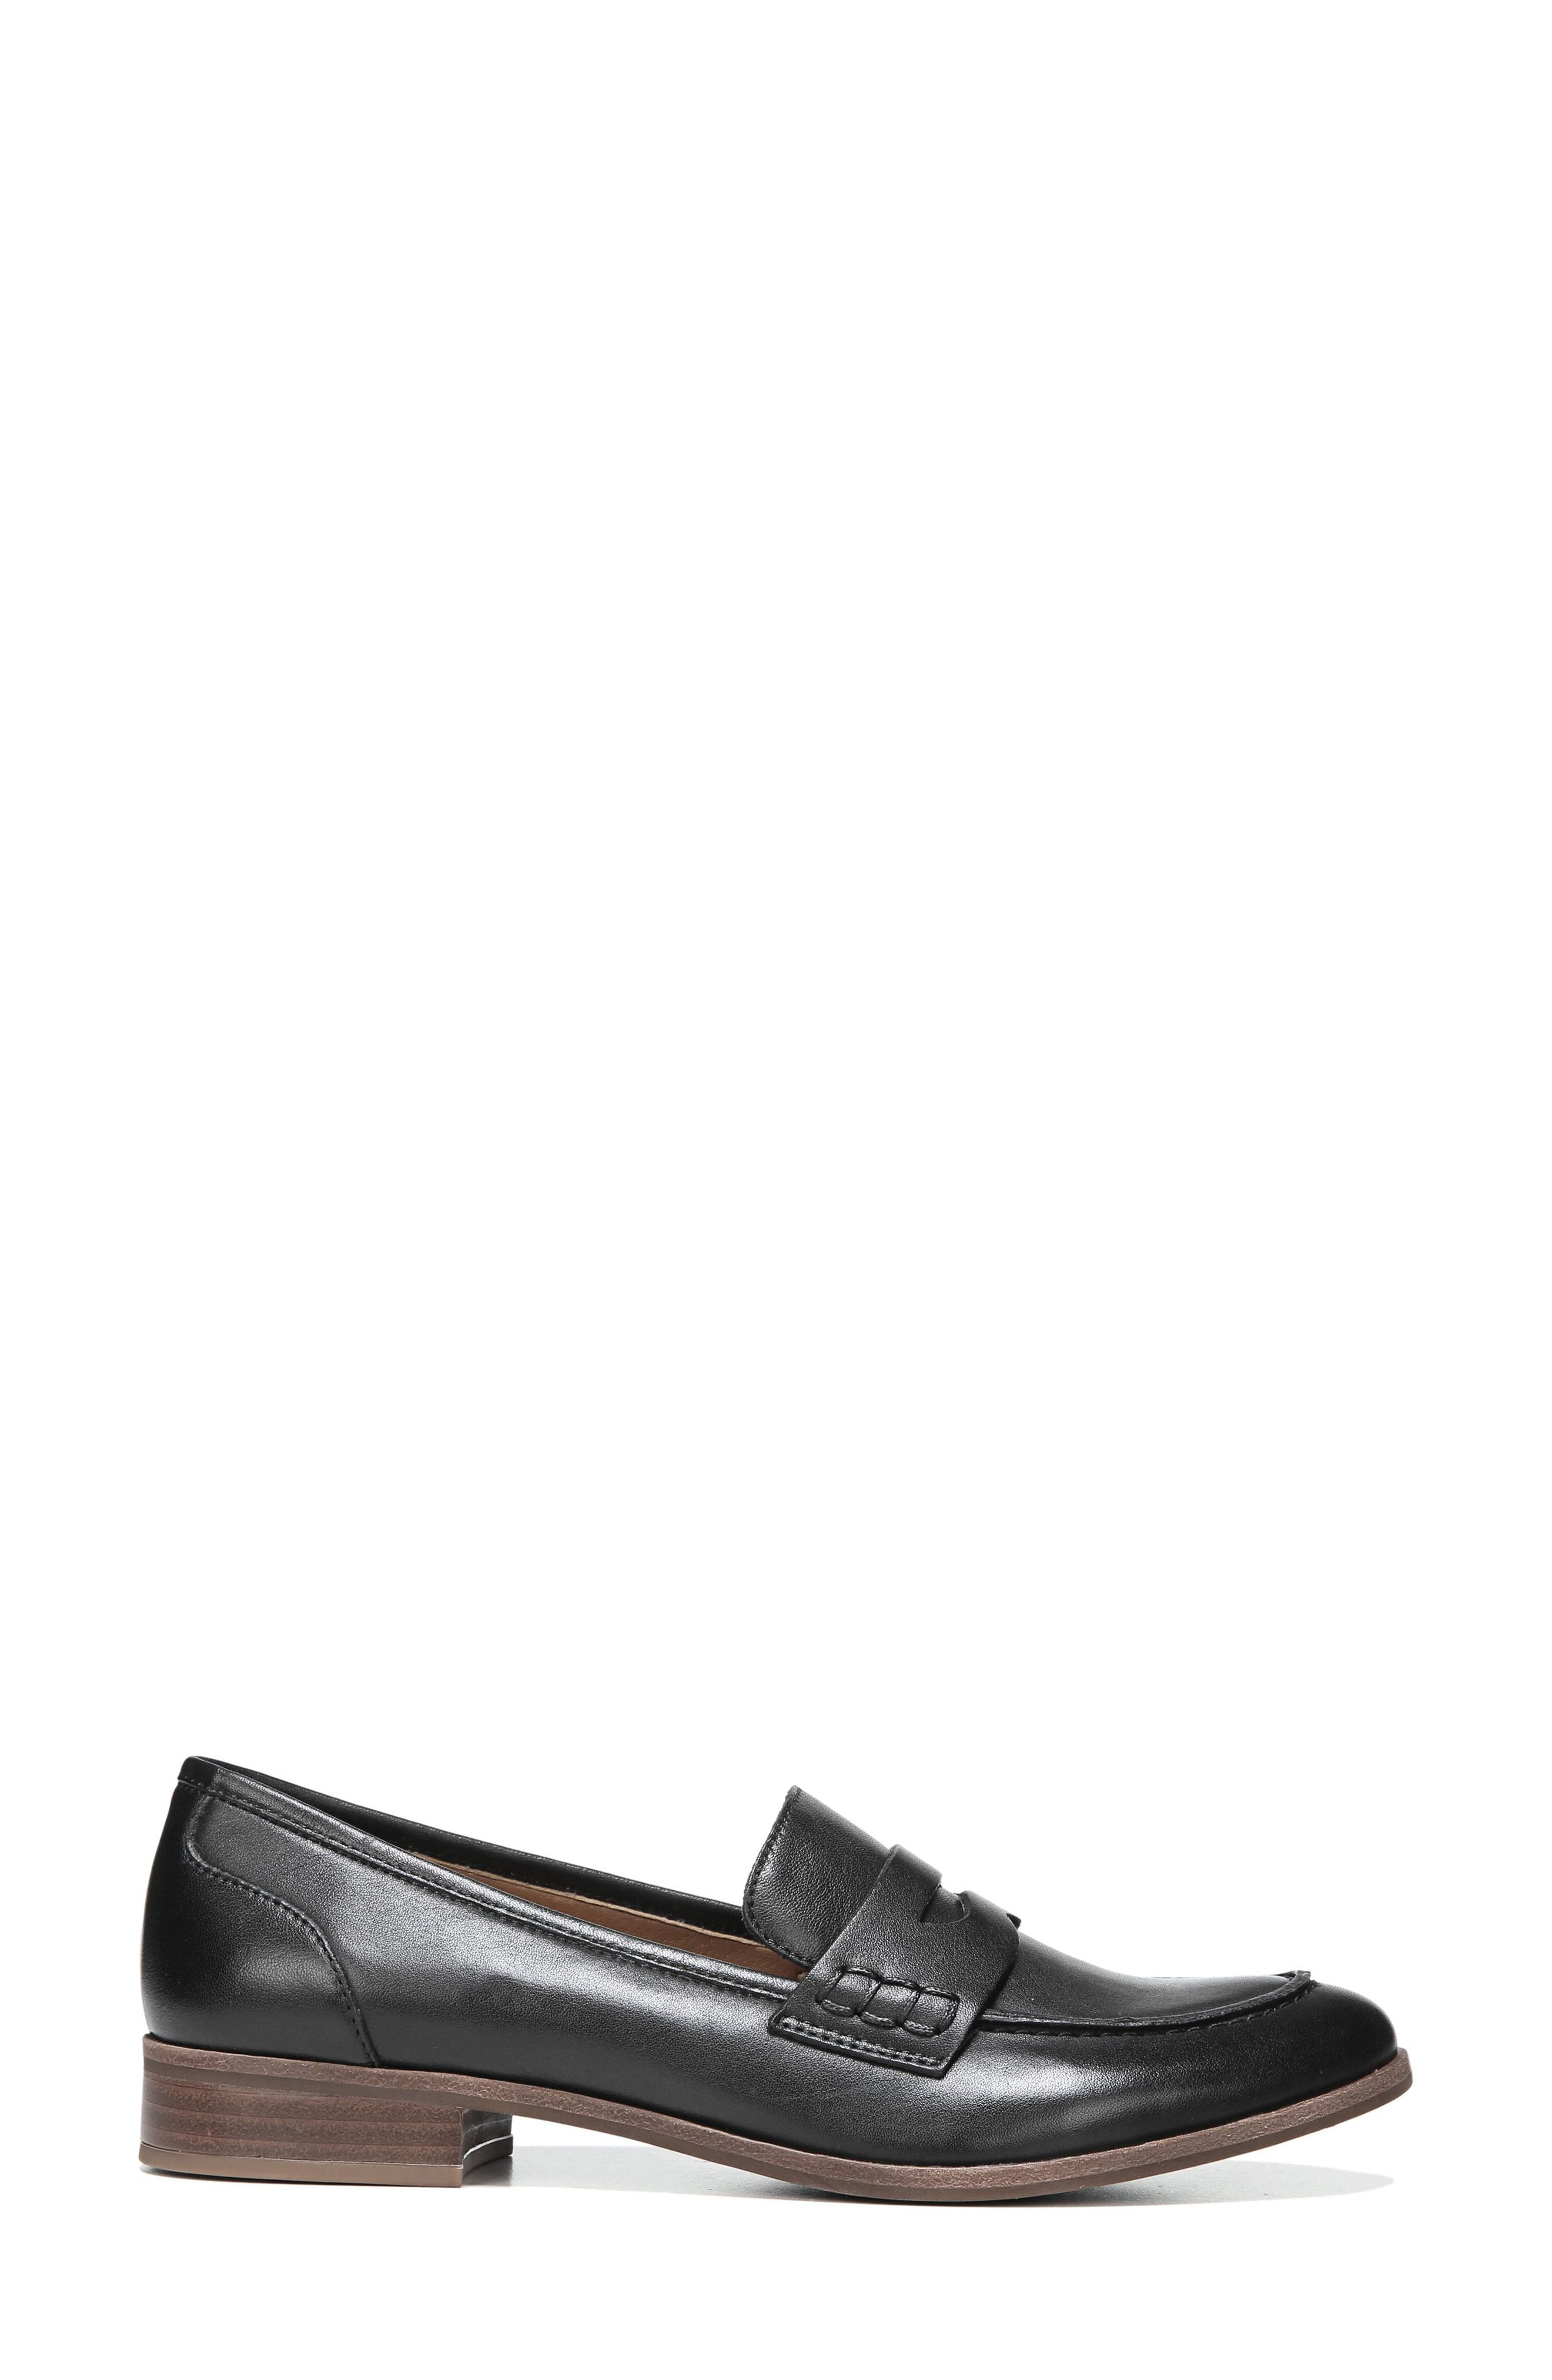 SARTO BY FRANCO SARTO, 'Jolette' Penny Loafer, Alternate thumbnail 3, color, BLACK LEATHER